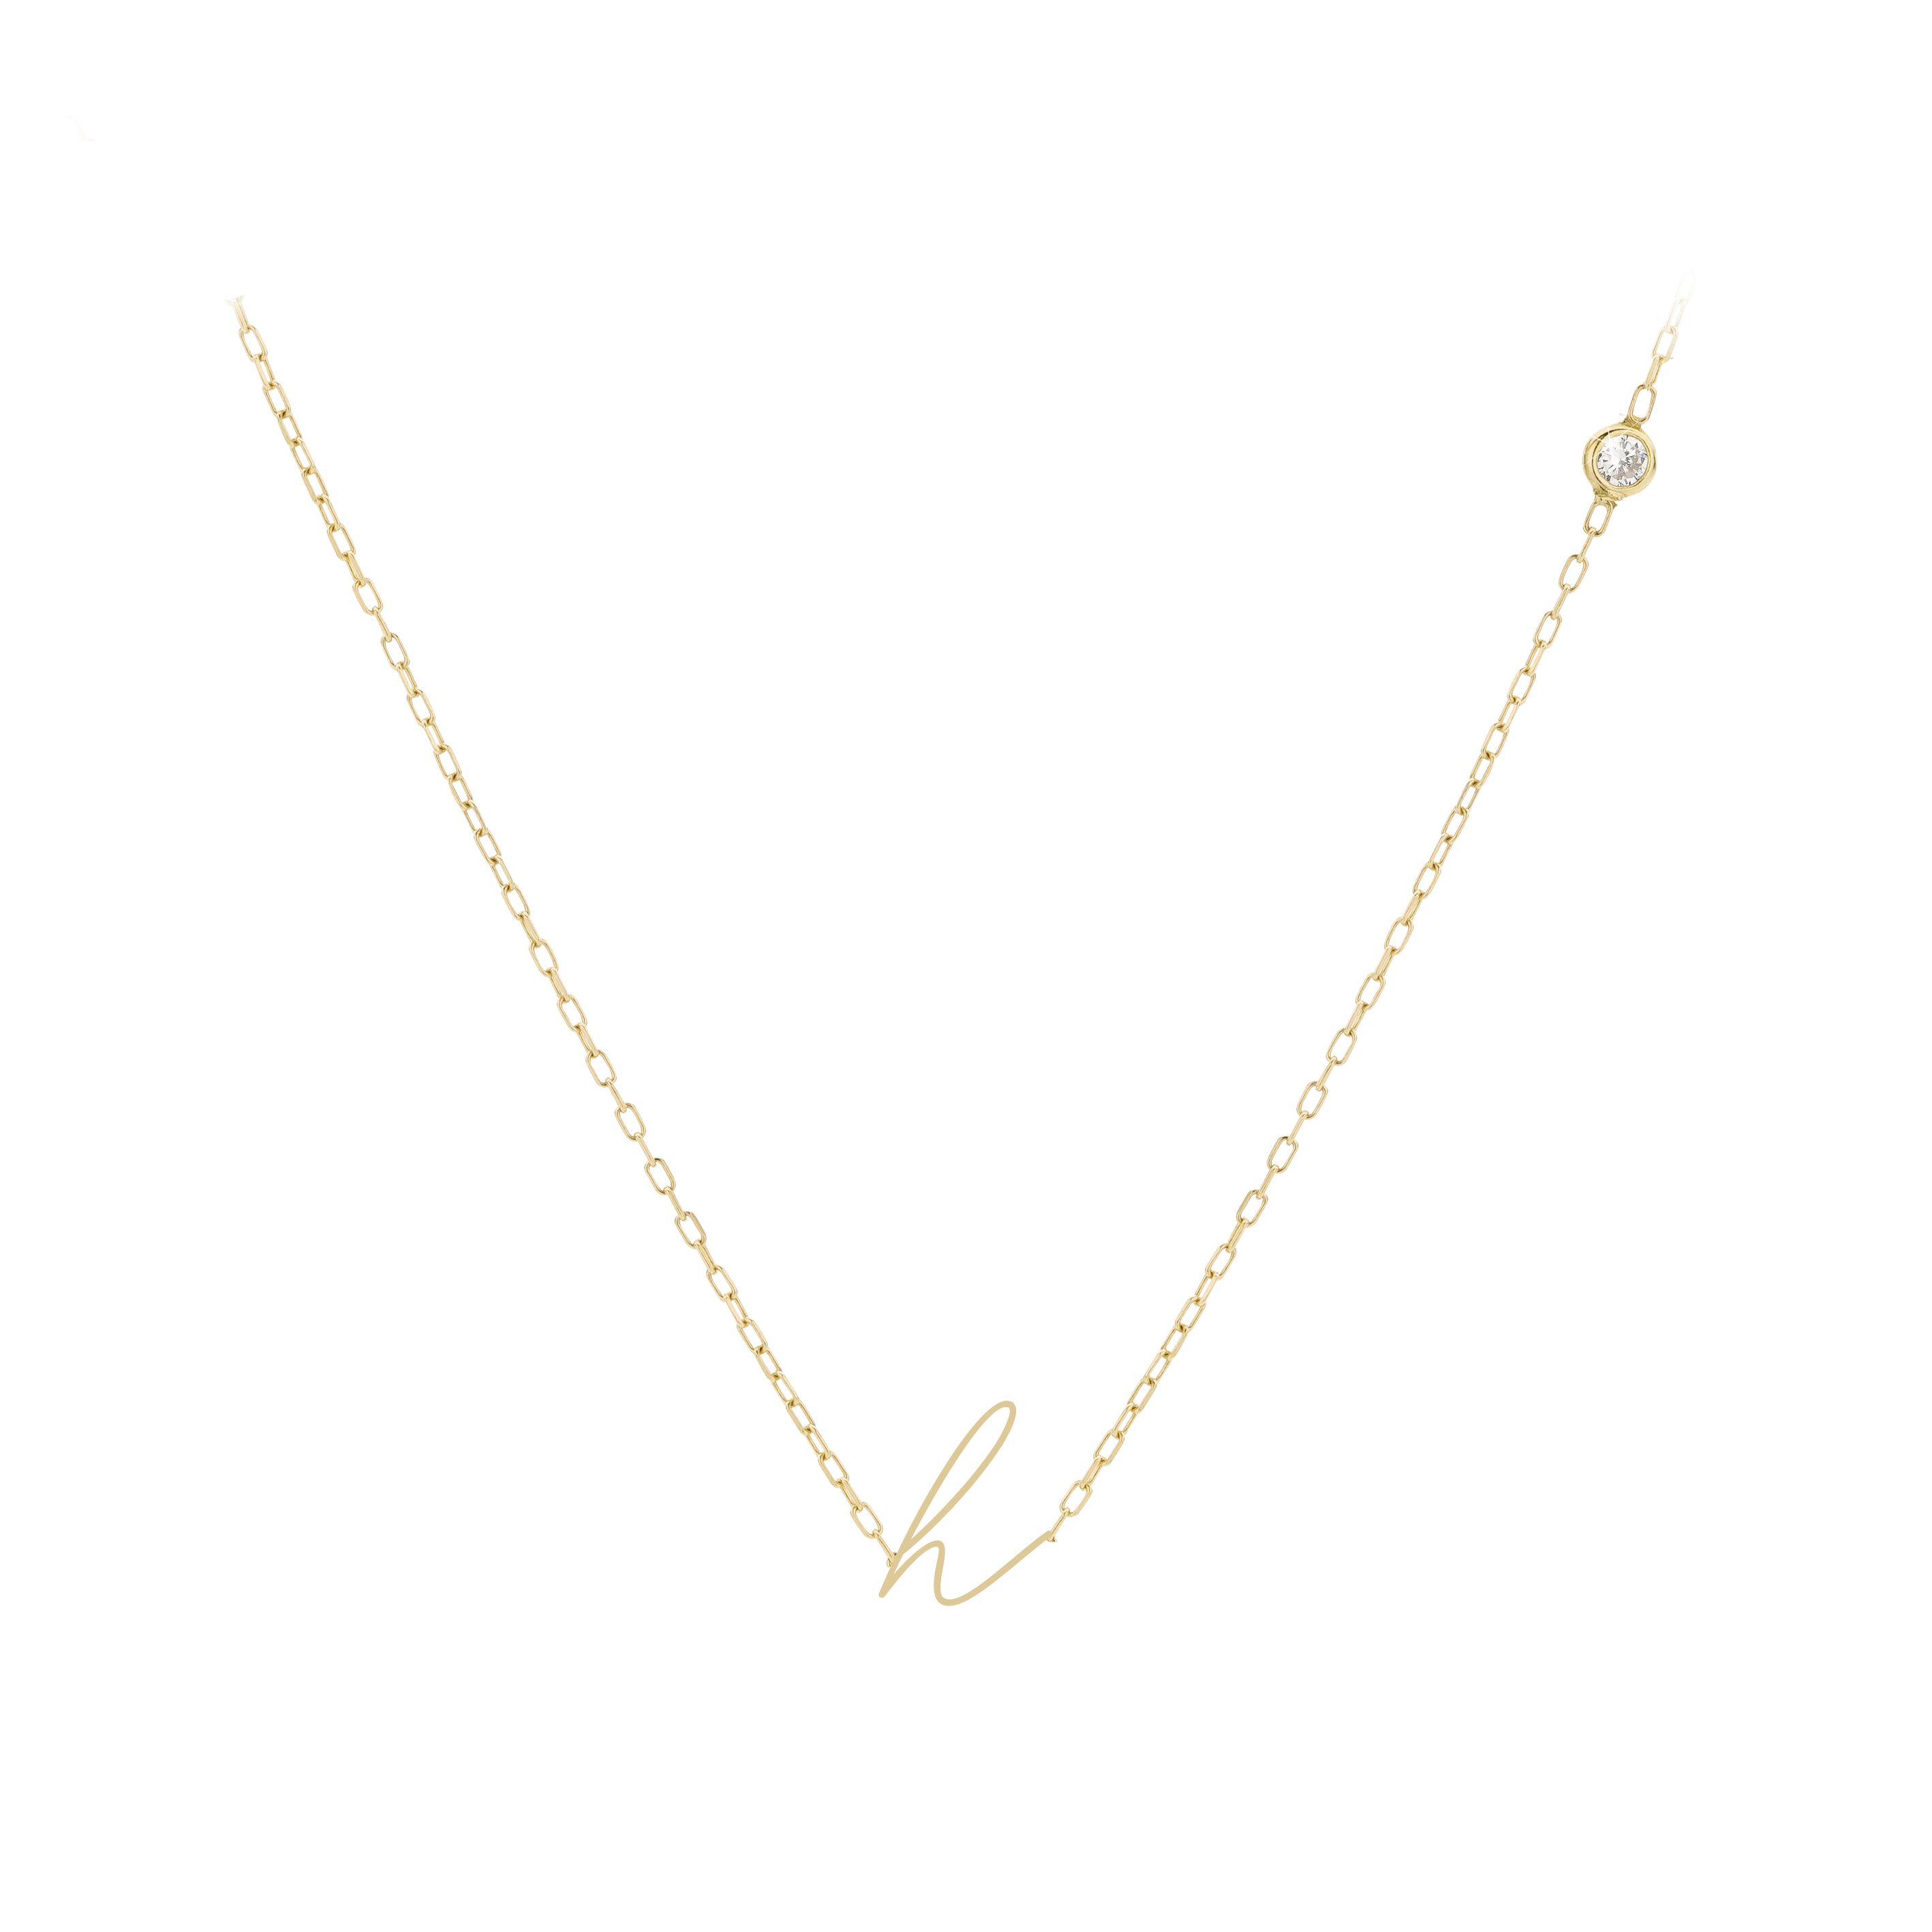 Identity Necklace by N-UE Fine Jewellery on curated-crowd.com